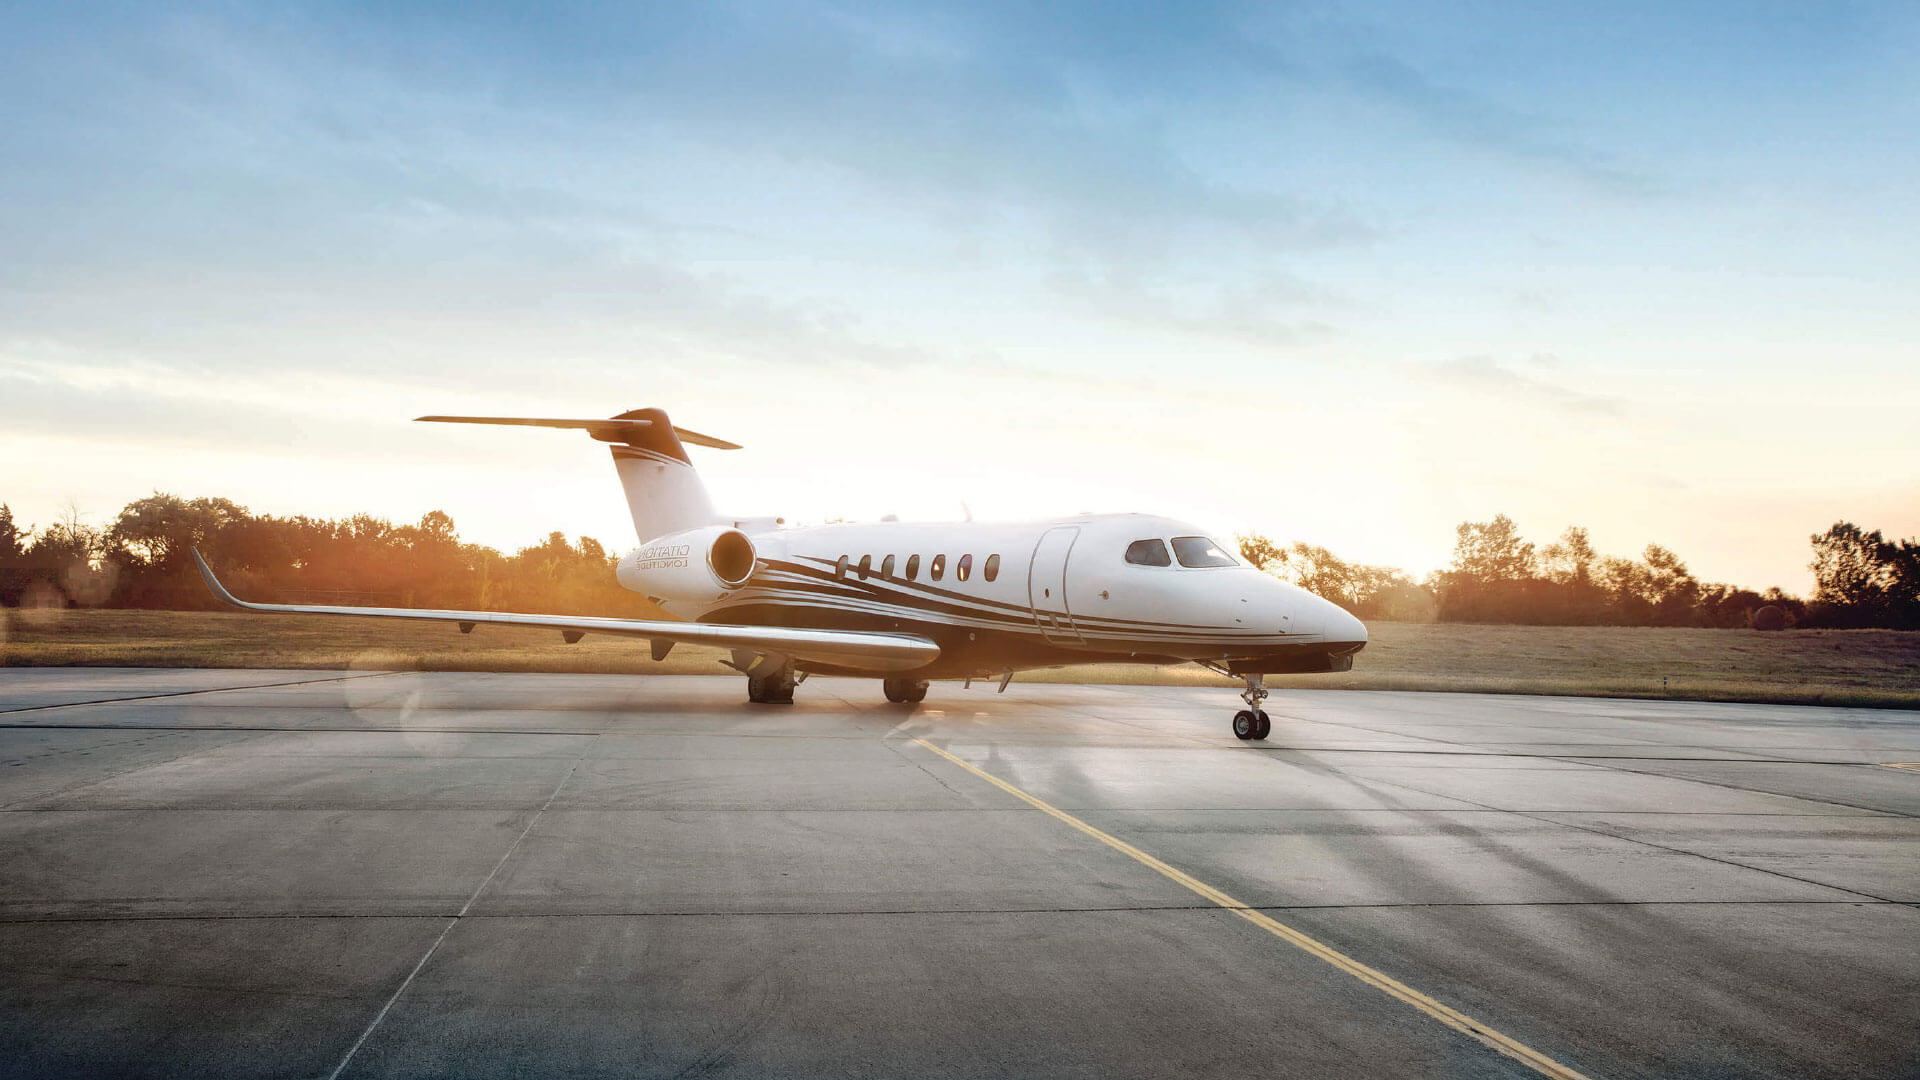 How to find the best private jet charter empty legs1 - How to find the best private jet charter empty legs